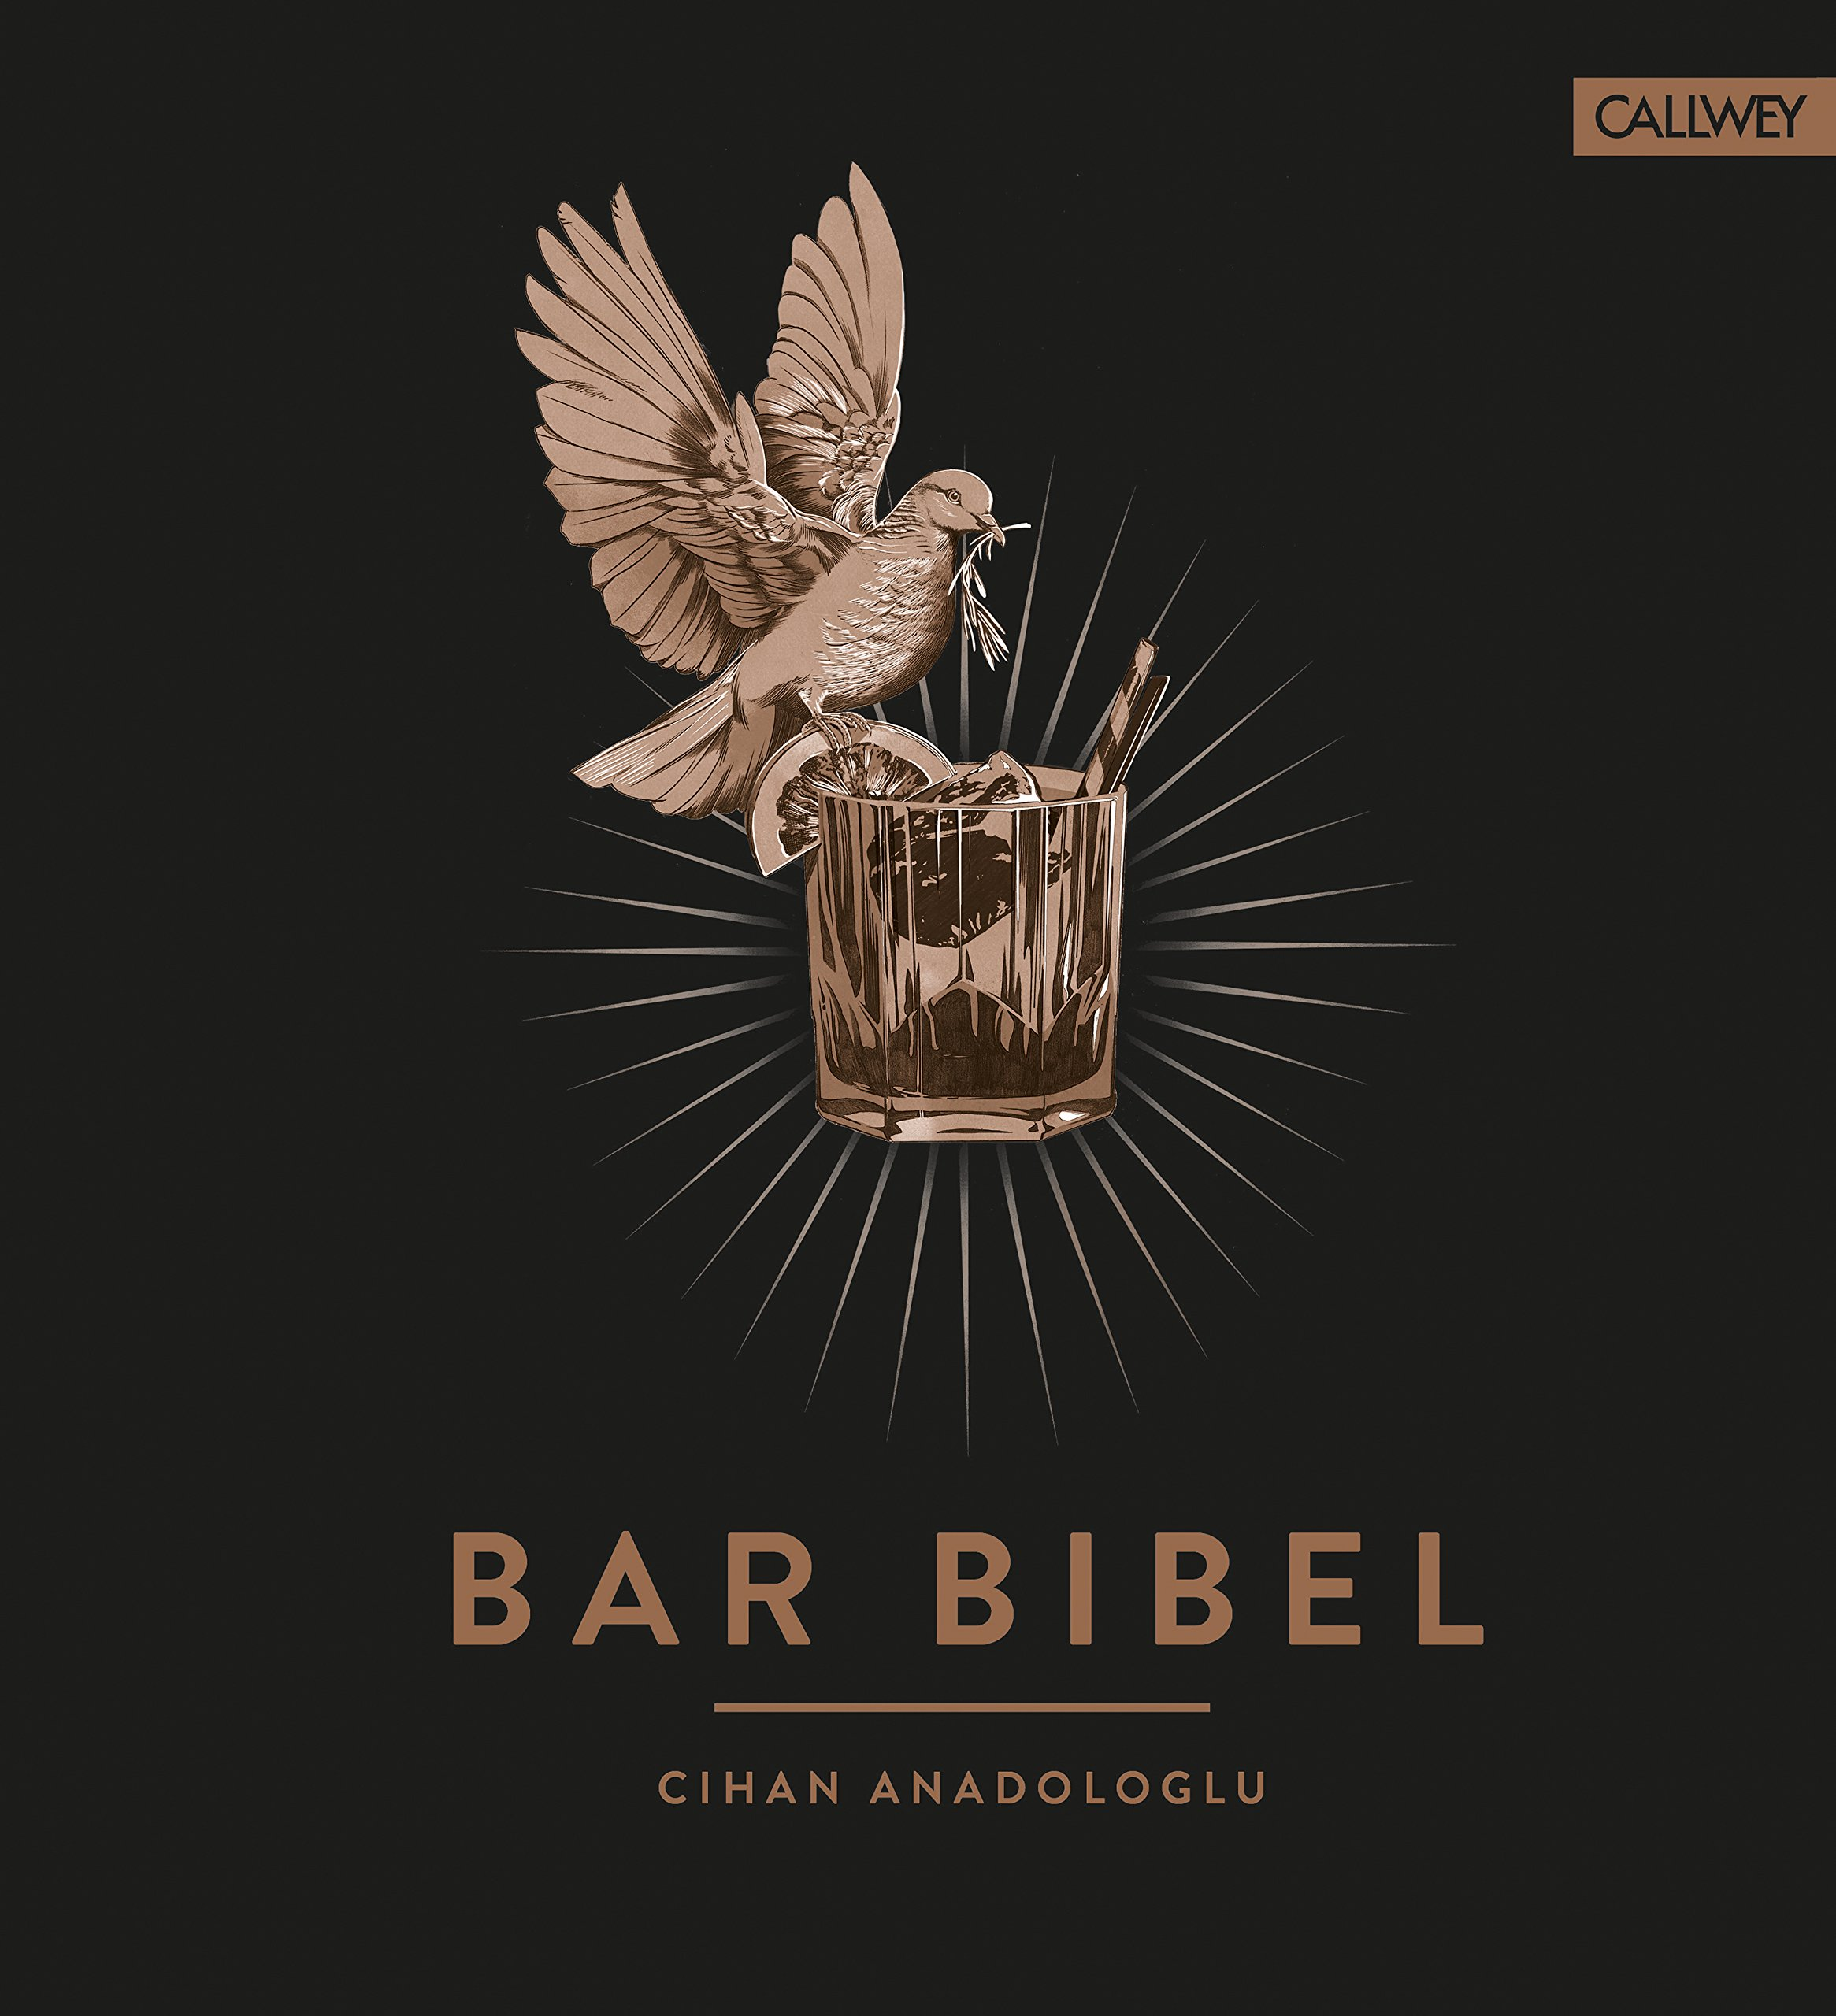 Bar Bibel: Amazon.de: Cihan Anadologlu, Daniel Esswein: Bücher